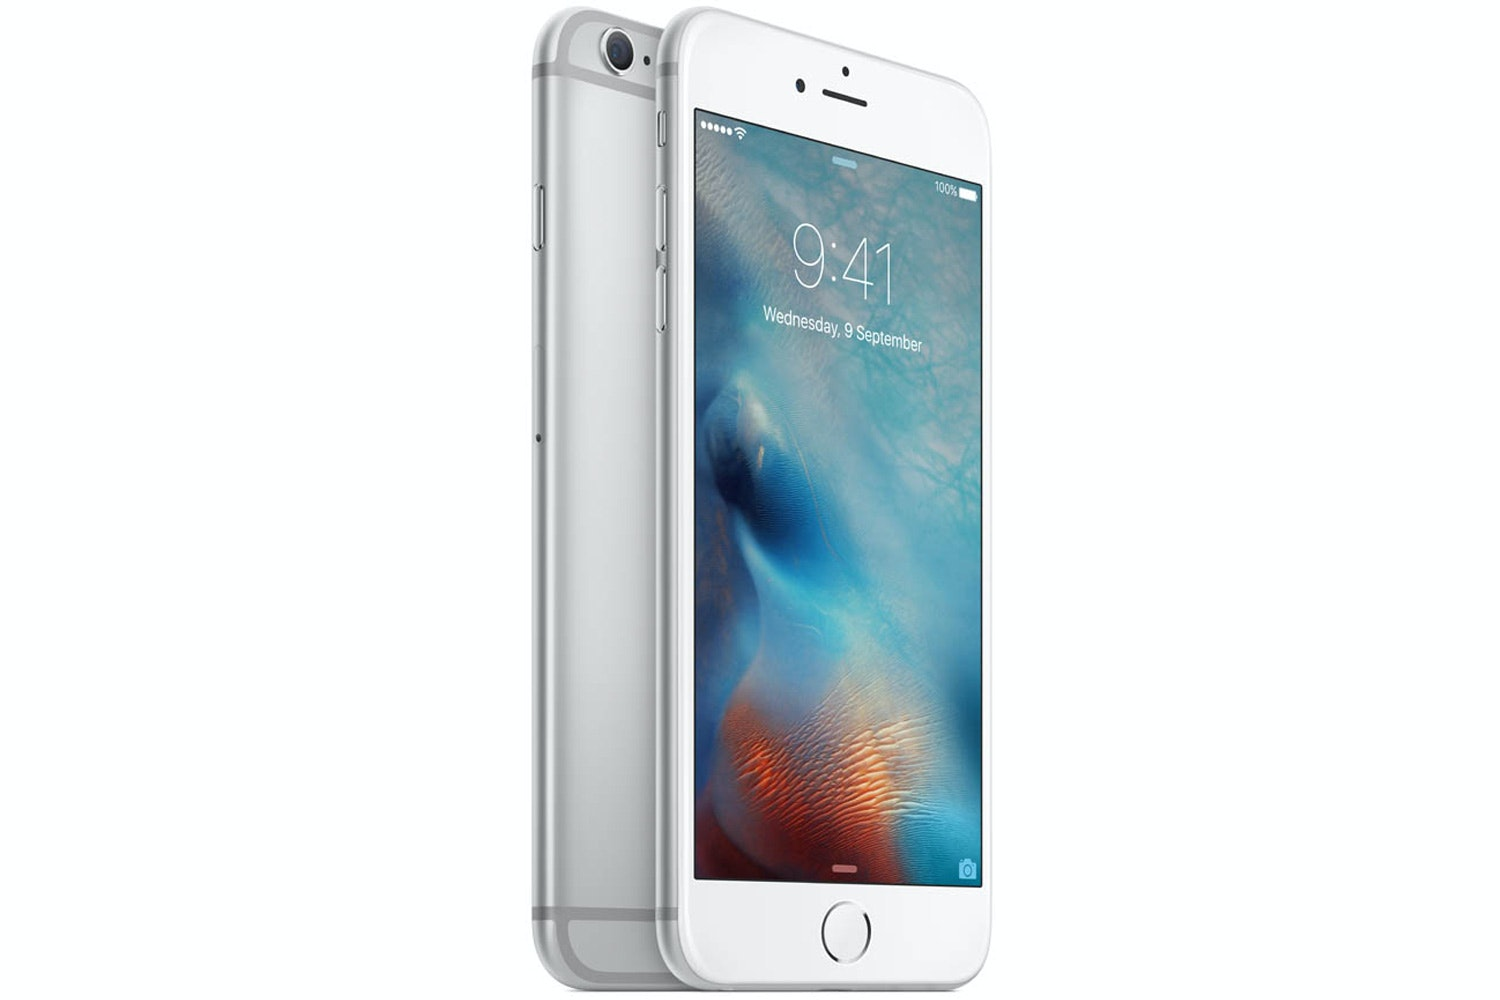 Mint+ Premium iPhone 6 | 16GB | Silver